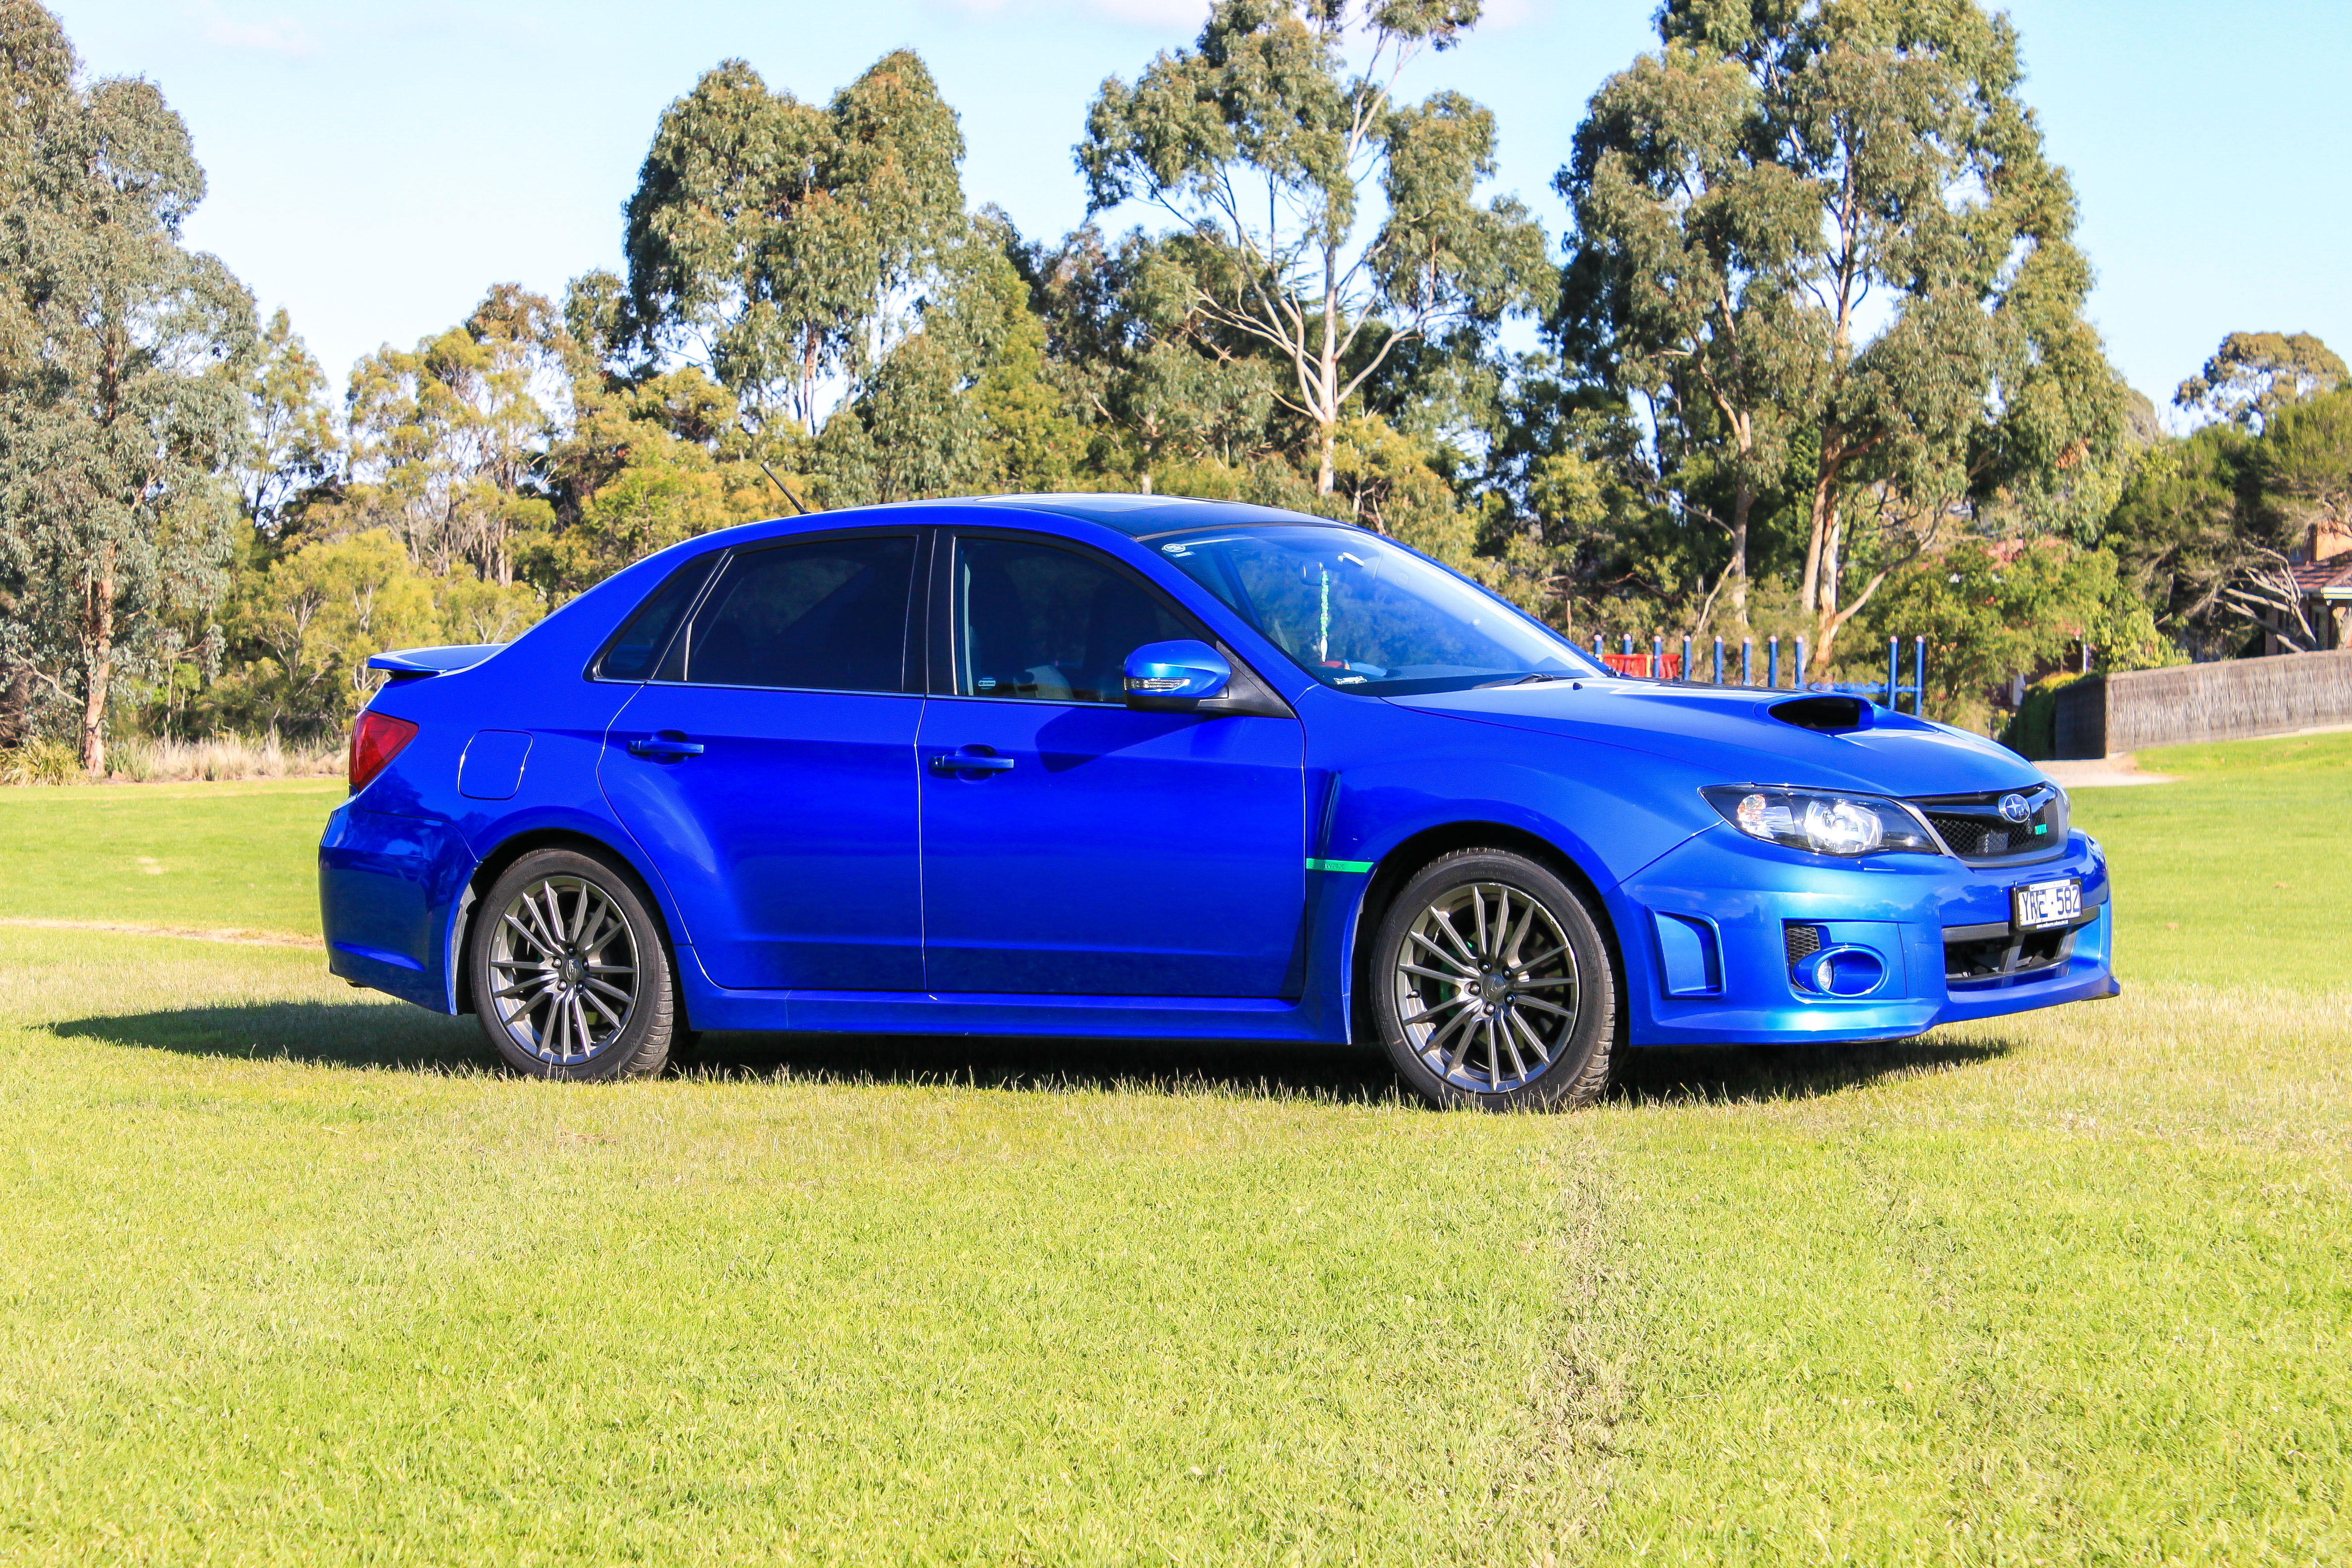 2012 subaru impreza wrx g3 manual awd find me cars. Black Bedroom Furniture Sets. Home Design Ideas